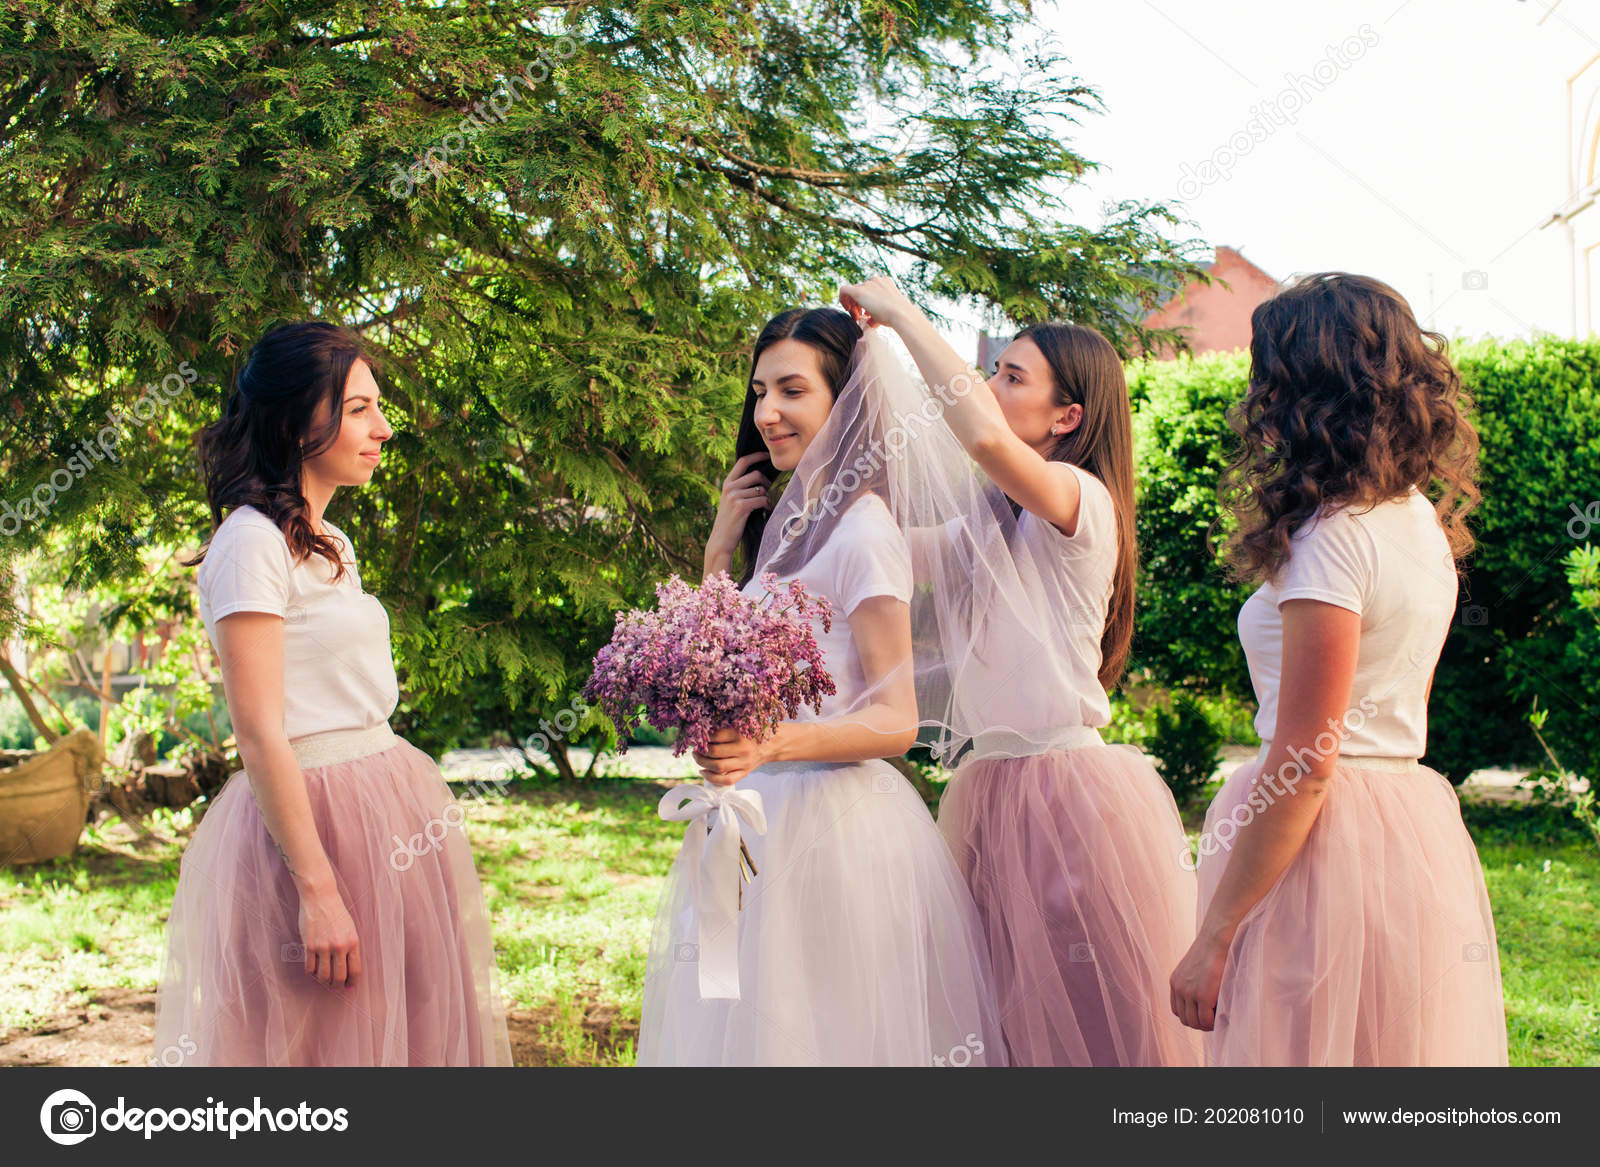 Girlfriends dress up the bridal veil to bride \u2014 Stock Photo